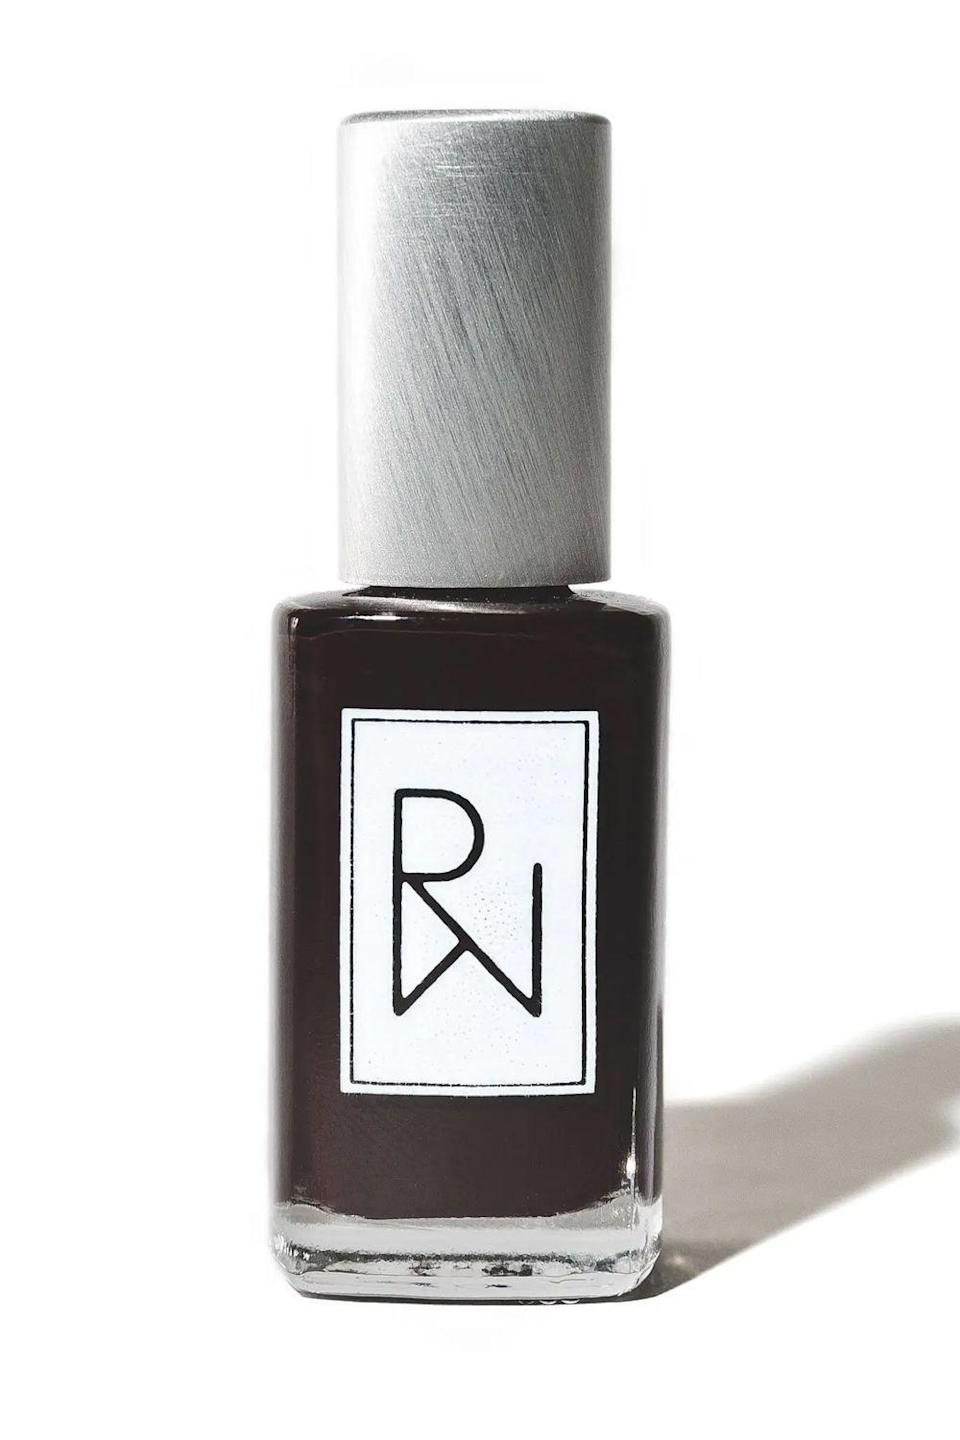 """<p>rootedwoman.com</p><p><strong>$15.00</strong></p><p><a href=""""https://www.rootedwoman.com/products/renewed"""" rel=""""nofollow noopener"""" target=""""_blank"""" data-ylk=""""slk:Shop Now"""" class=""""link rapid-noclick-resp"""">Shop Now</a></p><p>This ultra-dark red nail polish from indie brand Rooted Woman is <strong>basically the clean version of Essie's iconic Wicked shade</strong>. It's non-toxic, ethically made, and a total staple for all your <a href=""""https://www.cosmopolitan.com/style-beauty/beauty/g13813011/winter-nail-colors/"""" rel=""""nofollow noopener"""" target=""""_blank"""" data-ylk=""""slk:winter manis"""" class=""""link rapid-noclick-resp"""">winter manis</a> and pedis.</p>"""